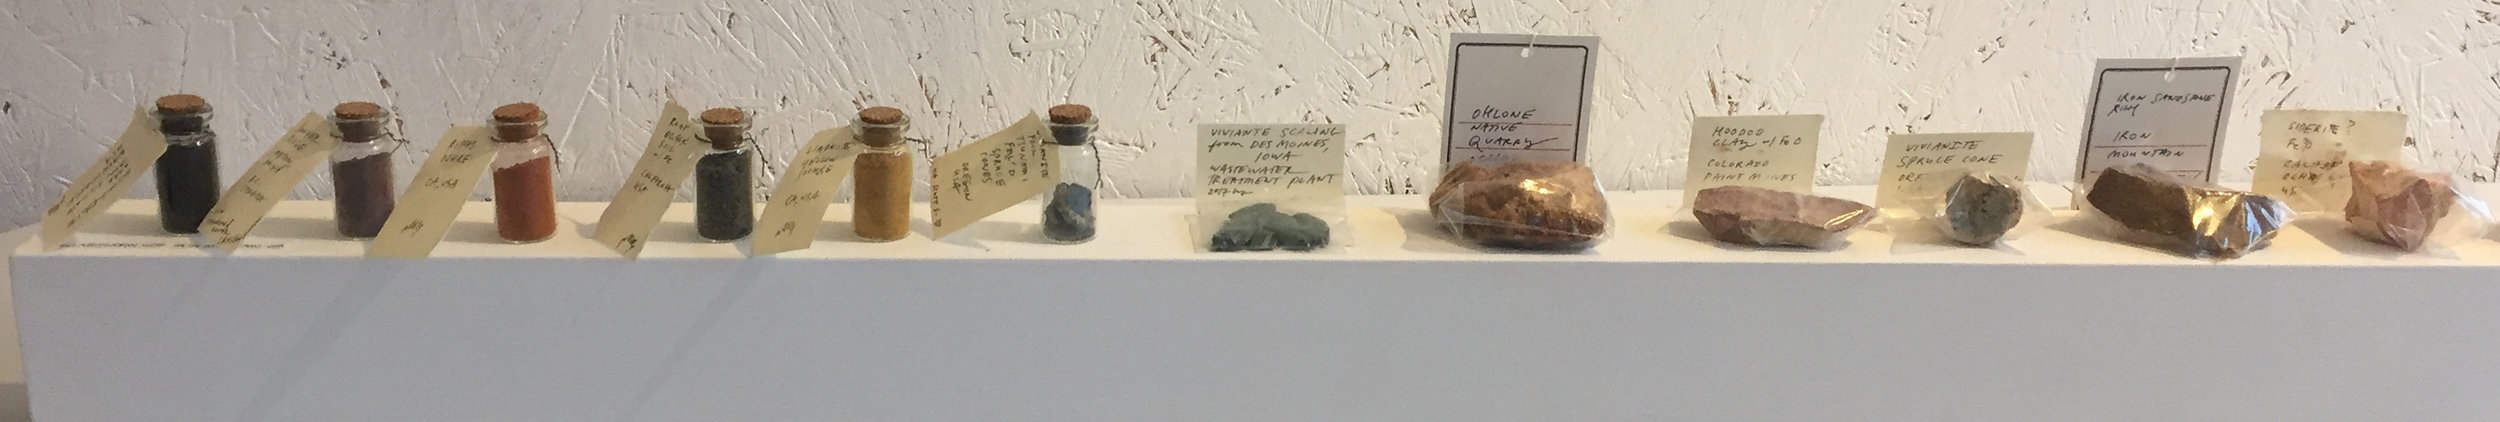 The rocks and pigments are often exhibited alongside my paintings.